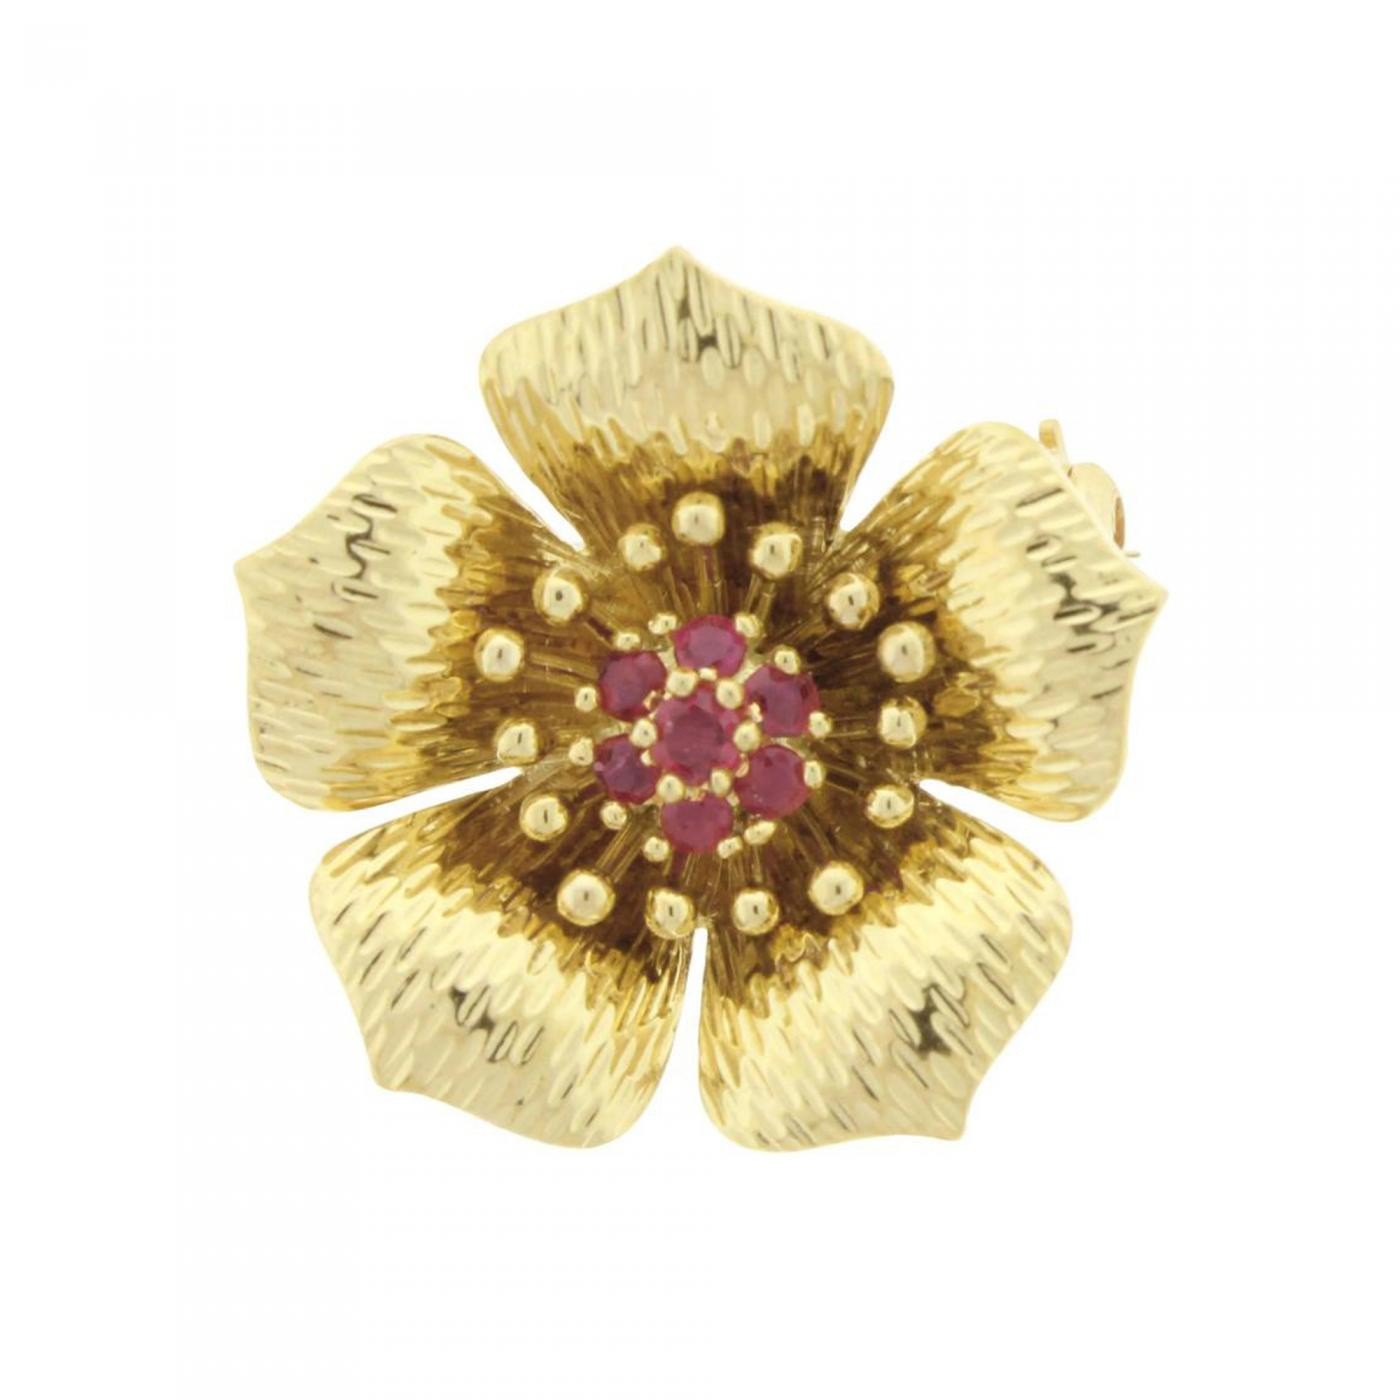 36b1b71db4d96 Tiffany and Co. - Tiffany & Co Ruby Gold Dogwood Flower Brooch